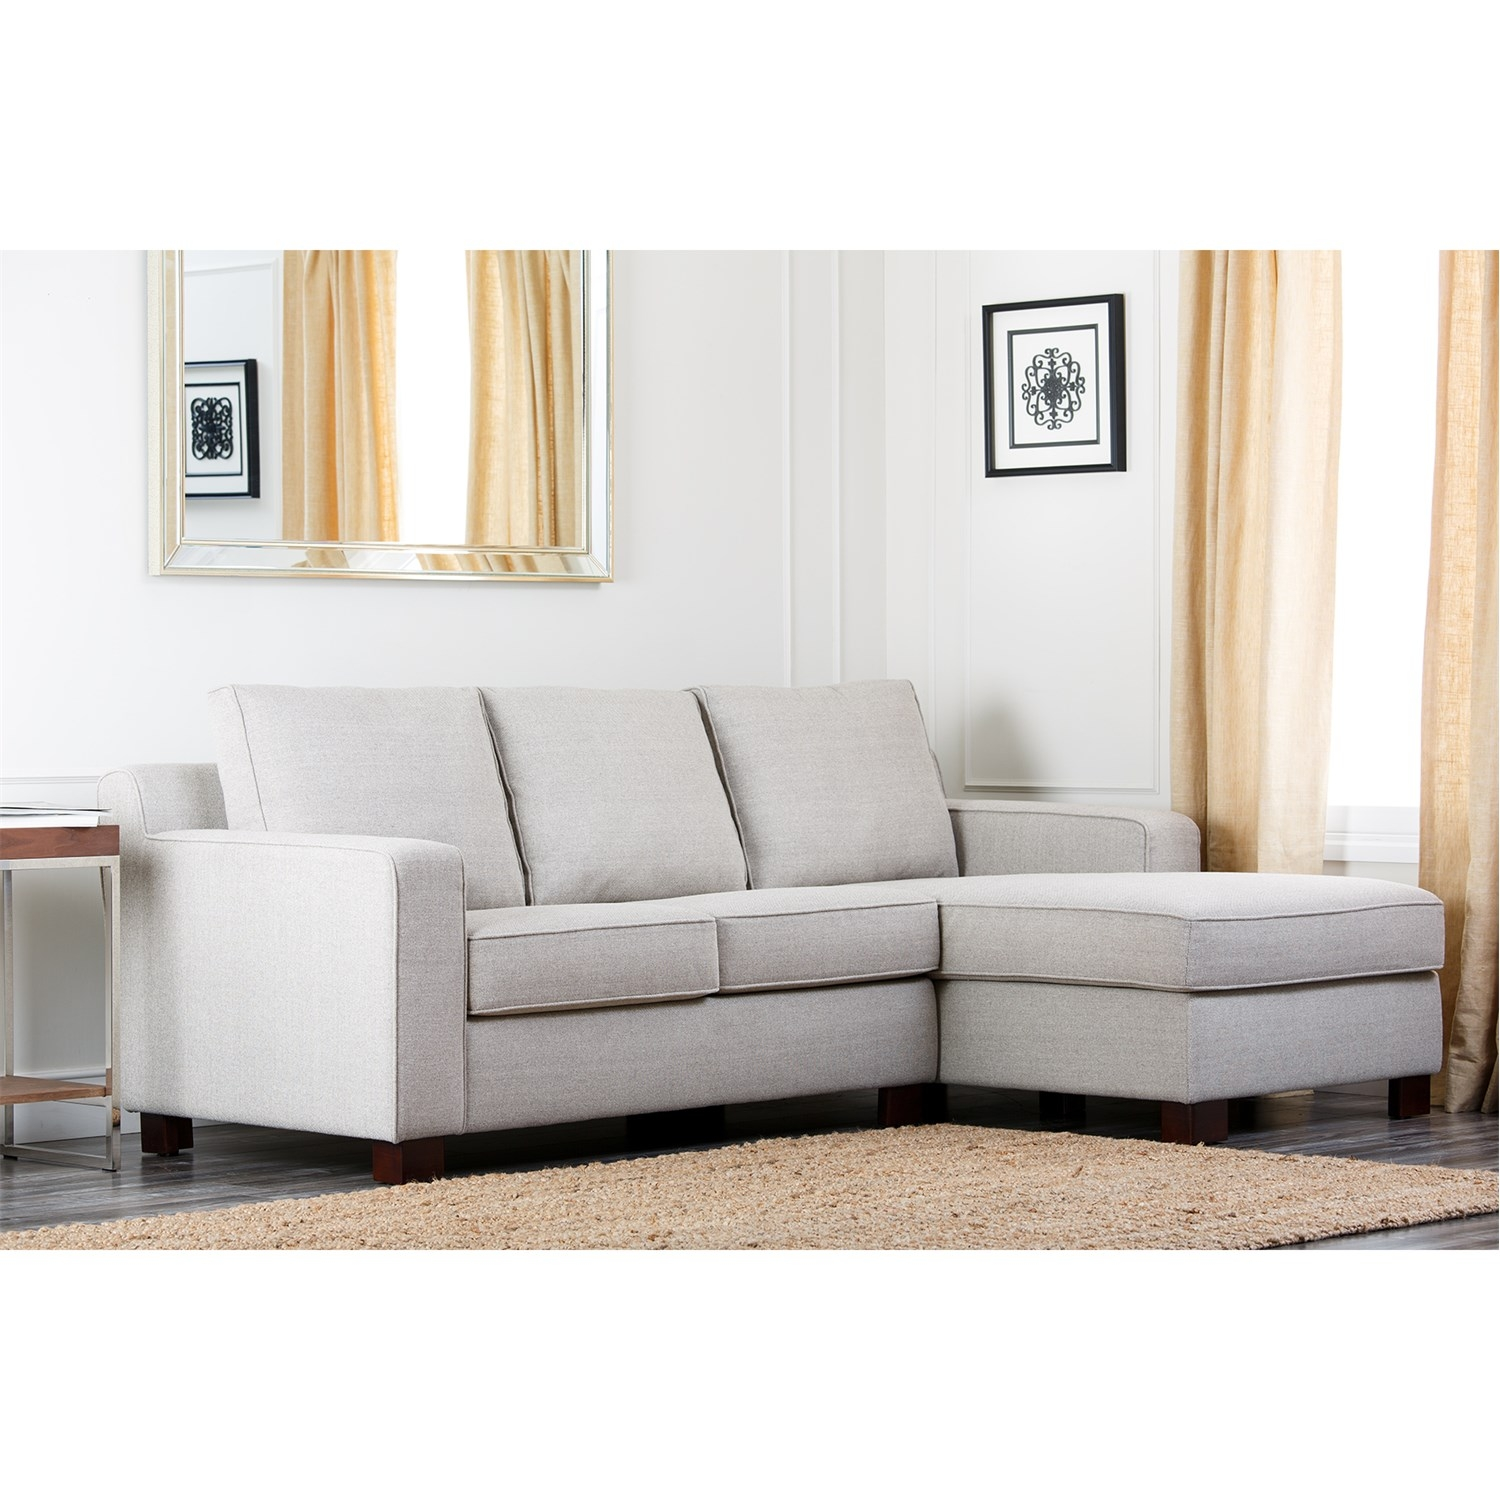 Abson Living Rl 1321 Gry Regina Grey Fabric Sectional Sofa Intended For Abbyson Sectional Sofa (View 15 of 15)